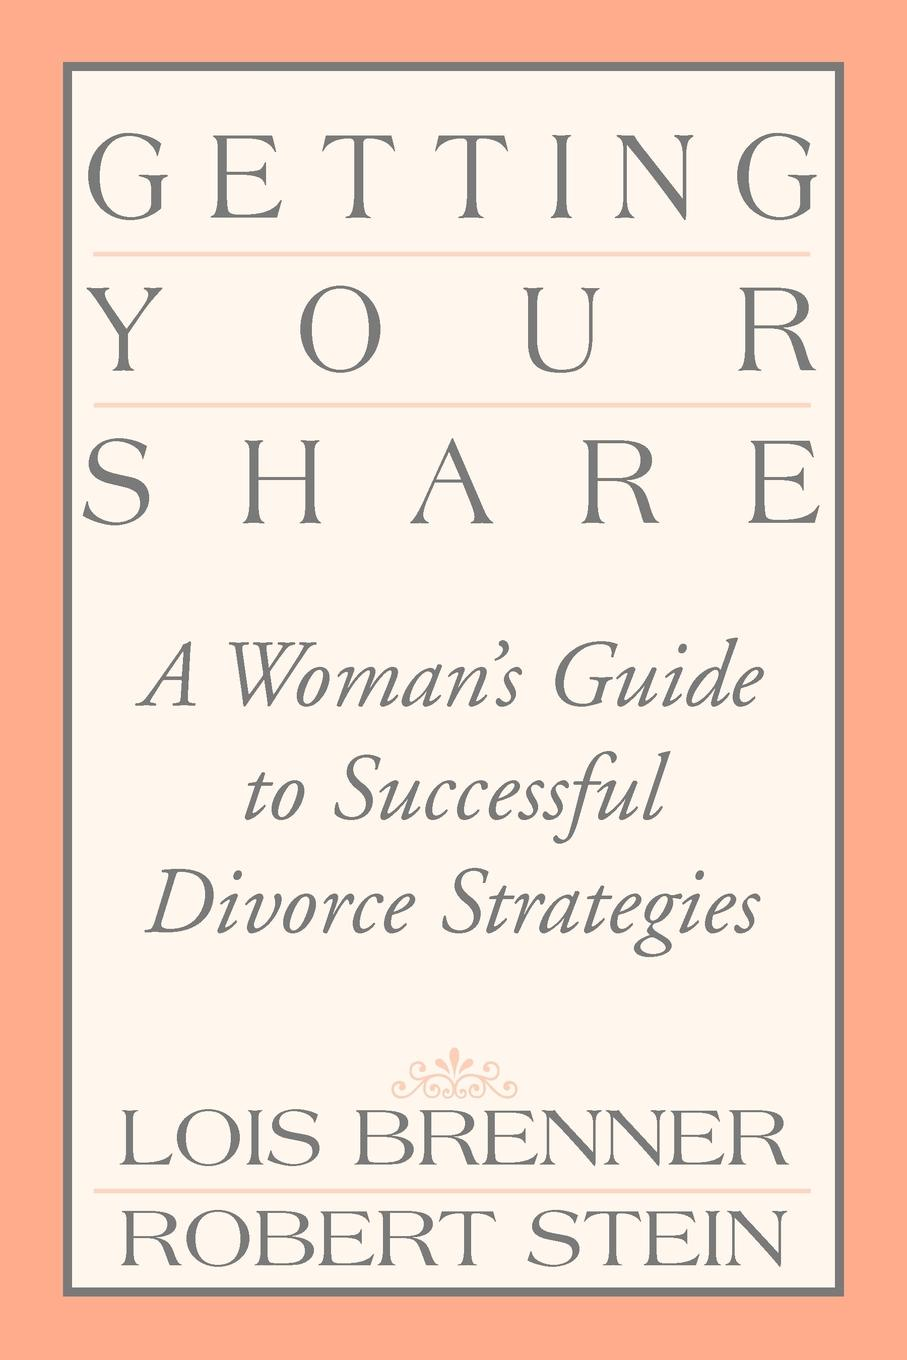 Lois Brenner, Robert Stein Getting Your Share. A Woman's Guide to Successful Divorce Strategies lois brenner robert stein getting your share a woman s guide to successful divorce strategies